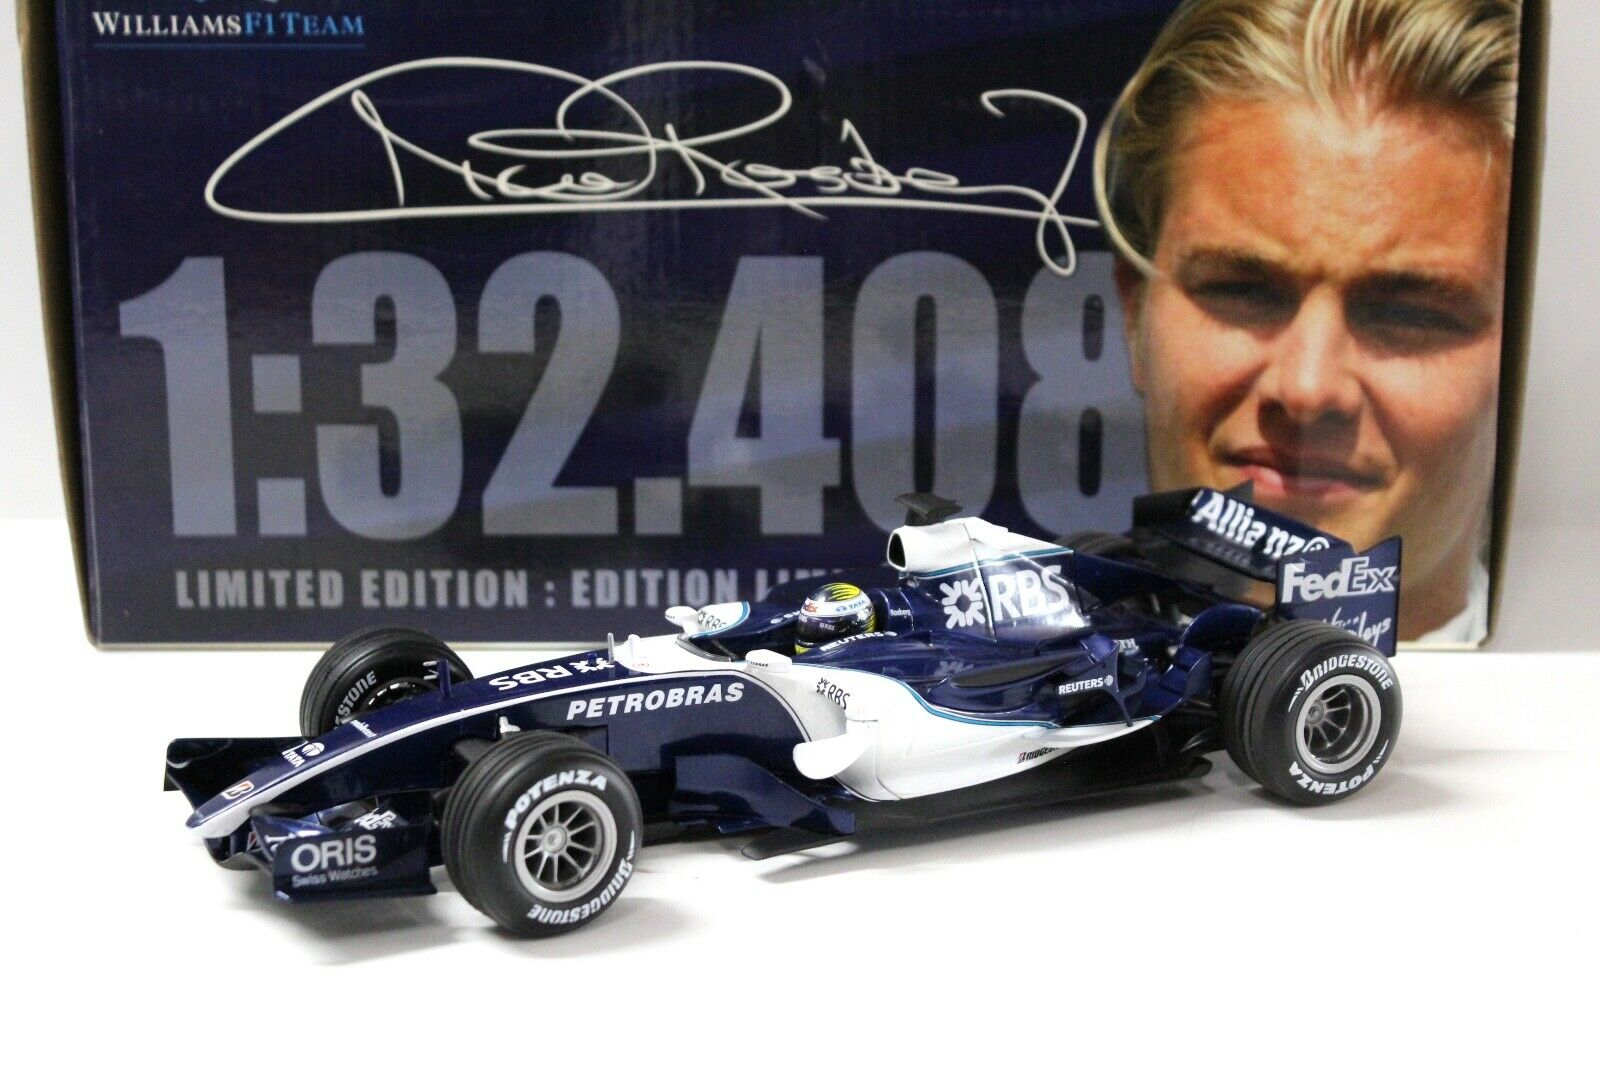 servicio considerado 1 18 Hot Wheels williams f1 fw28 fw28 fw28 rosberg 2006 bahrein New en Premium-modelCoches  El nuevo outlet de marcas online.